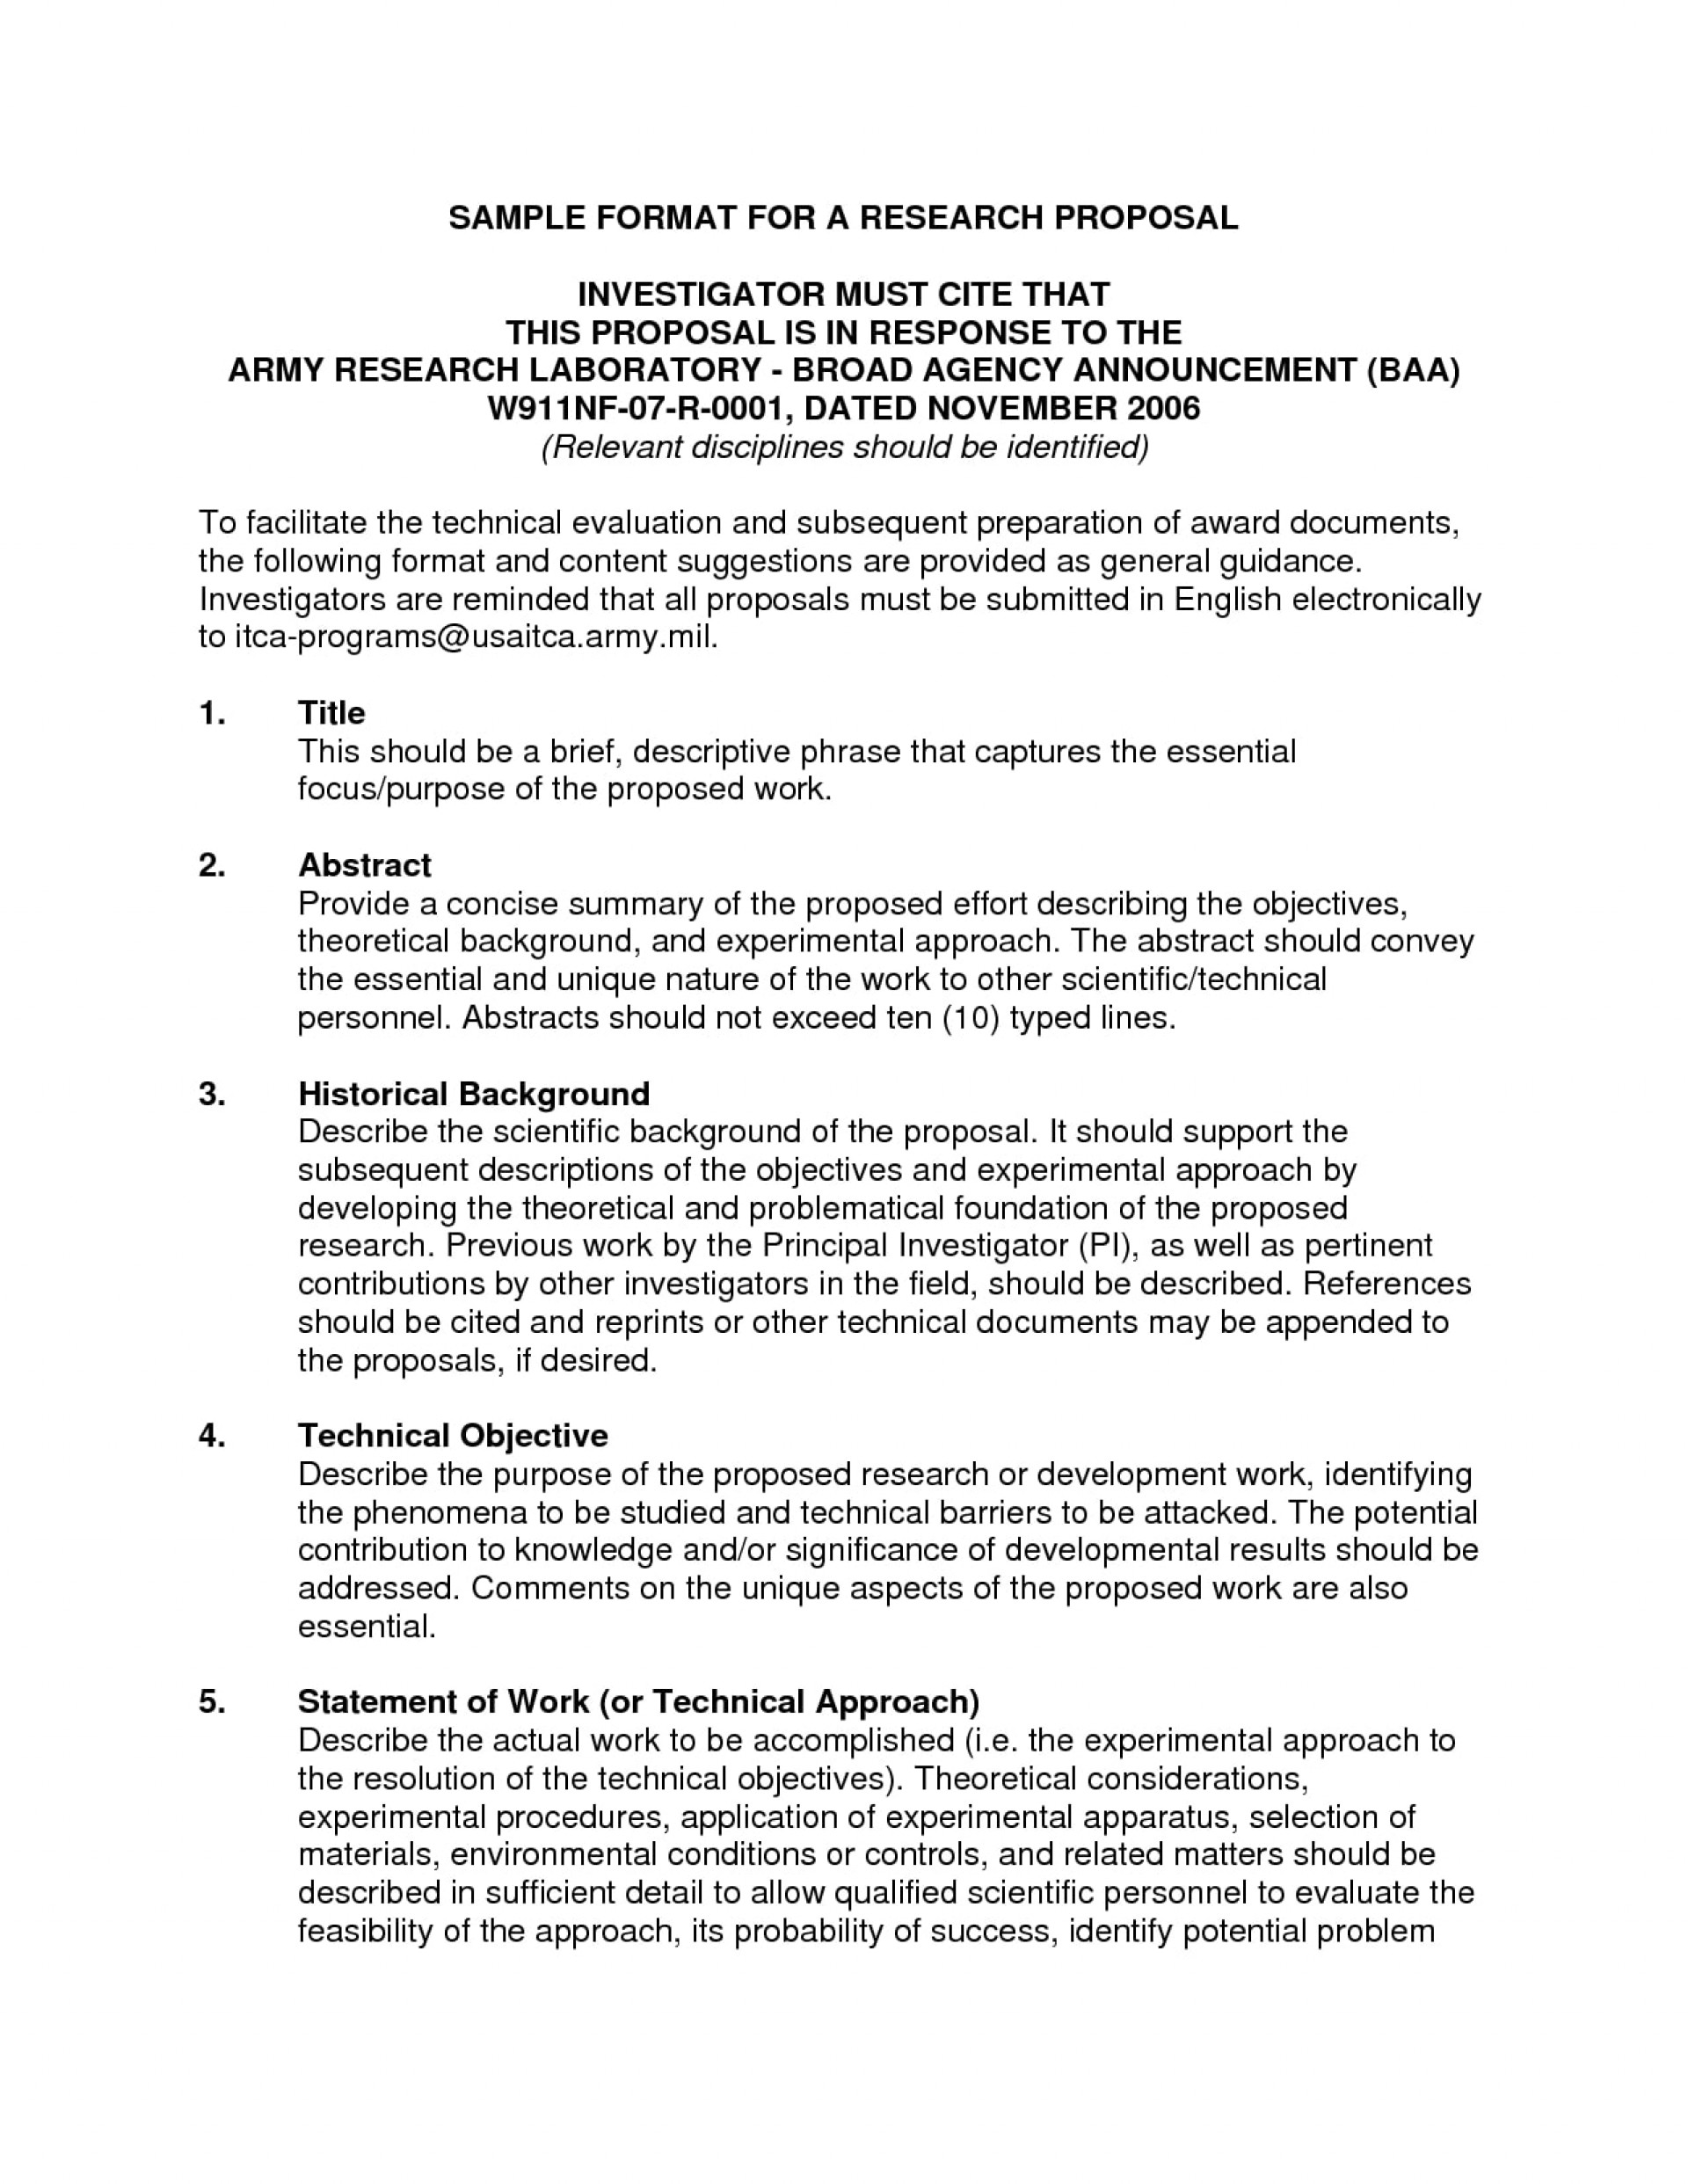 007 Proposal Research Paper Sample 6781019586 Action Astounding Pdf Mla In Education 1920